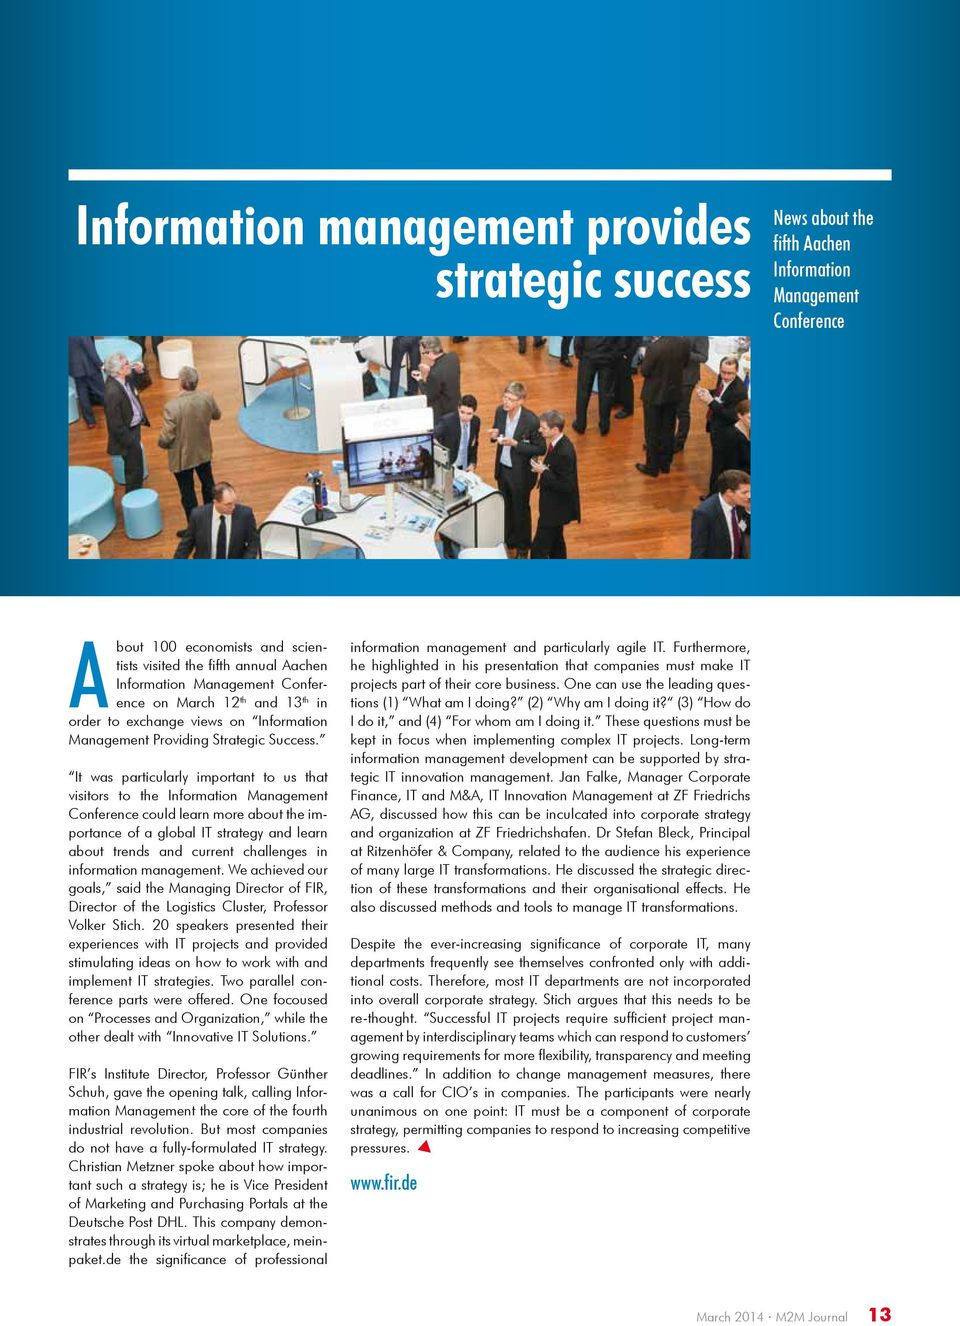 It was particularly important to us that visitors to the Information Management Conference could learn more about the importance of a global IT strategy and learn about trends and current challenges